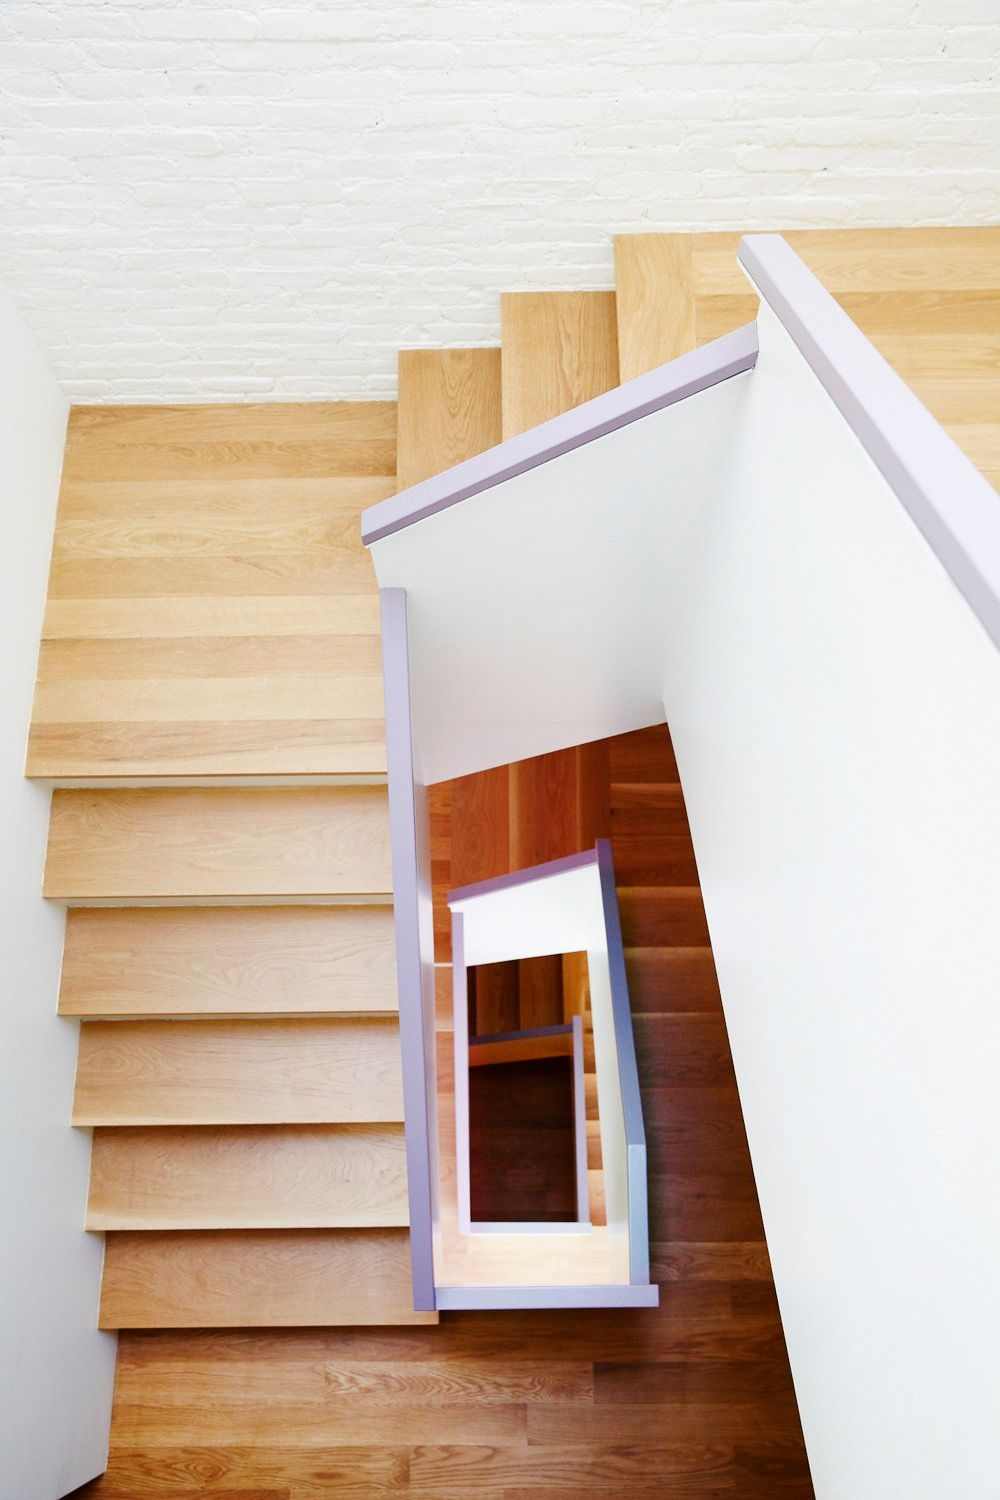 25 Unique Stair Designs Beautiful Stair Ideas For Your House | Duplex House Staircase Wall Design | Contemporary | Textured | Apartment Duplex | Fancy | Stair Wall Paint